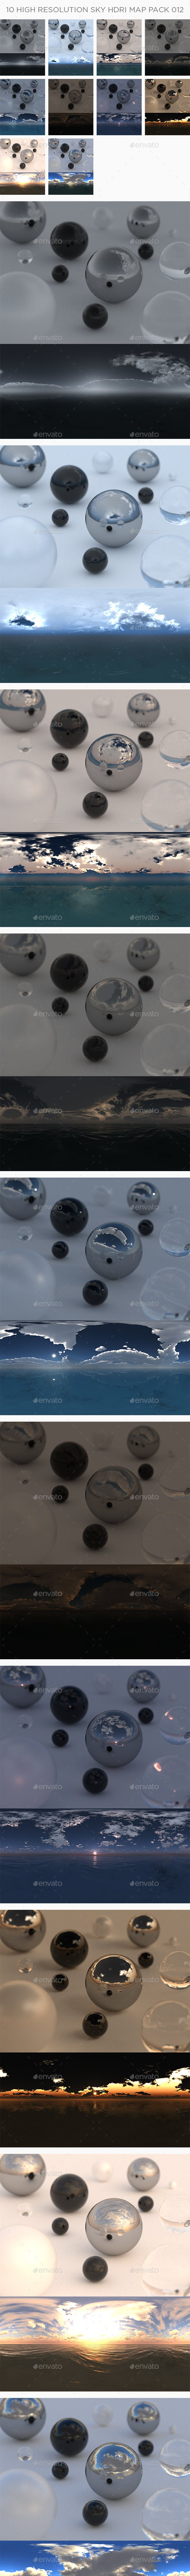 10 High Resolution Sky HDRi Maps Pack 012 - 3DOcean Item for Sale